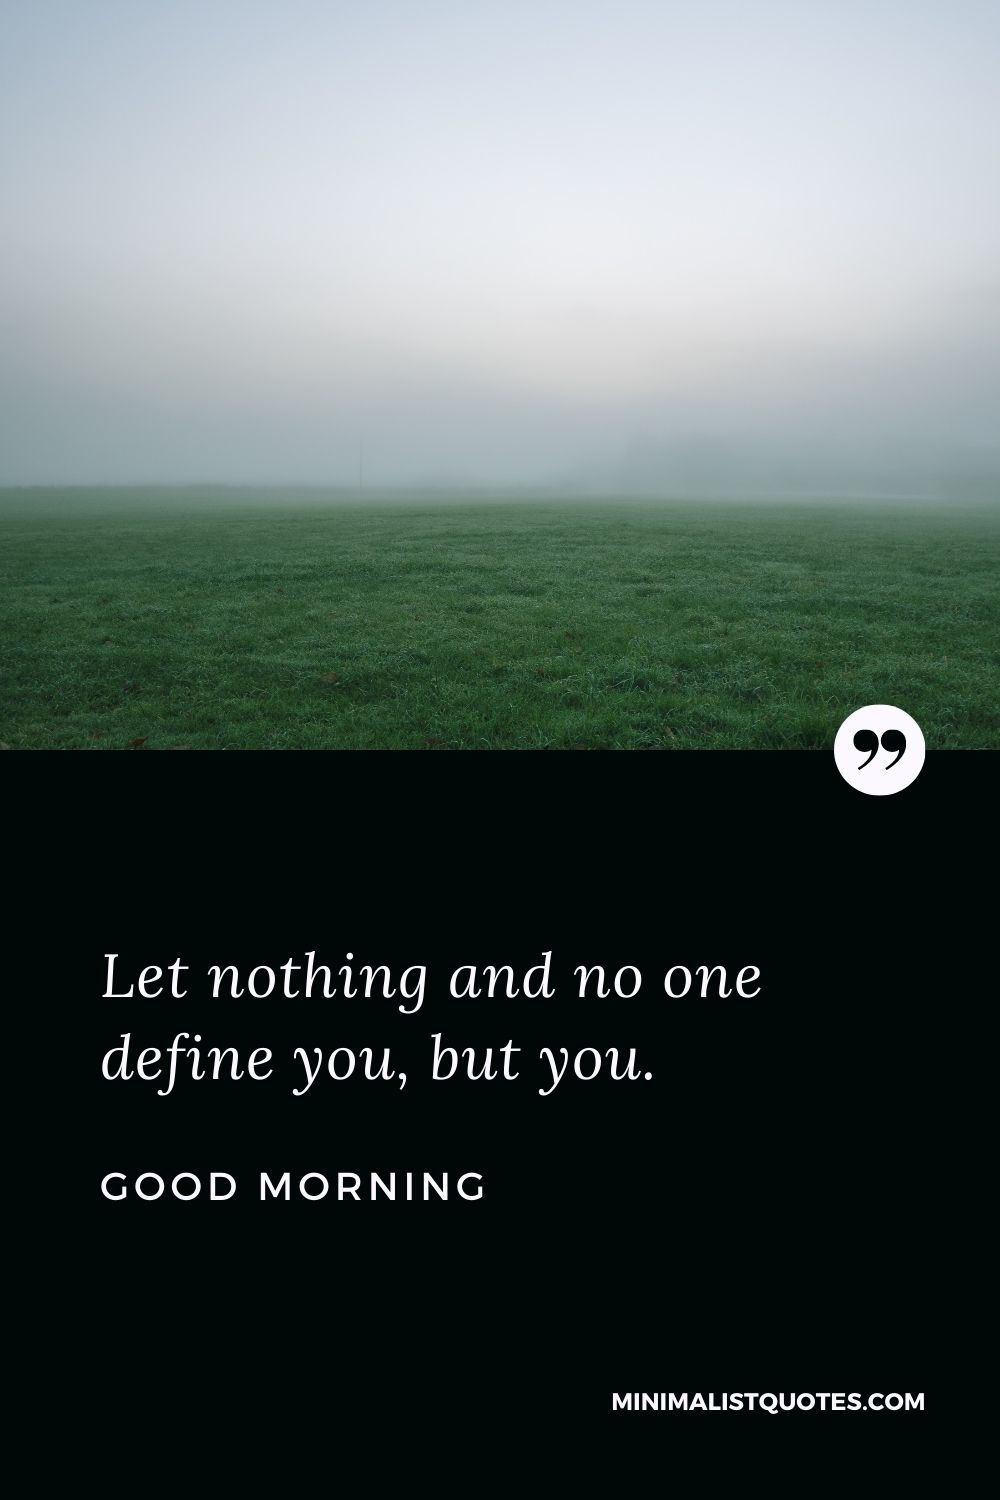 Good Morning Wish & Message With Image: Let nothing and no one define you, but you.